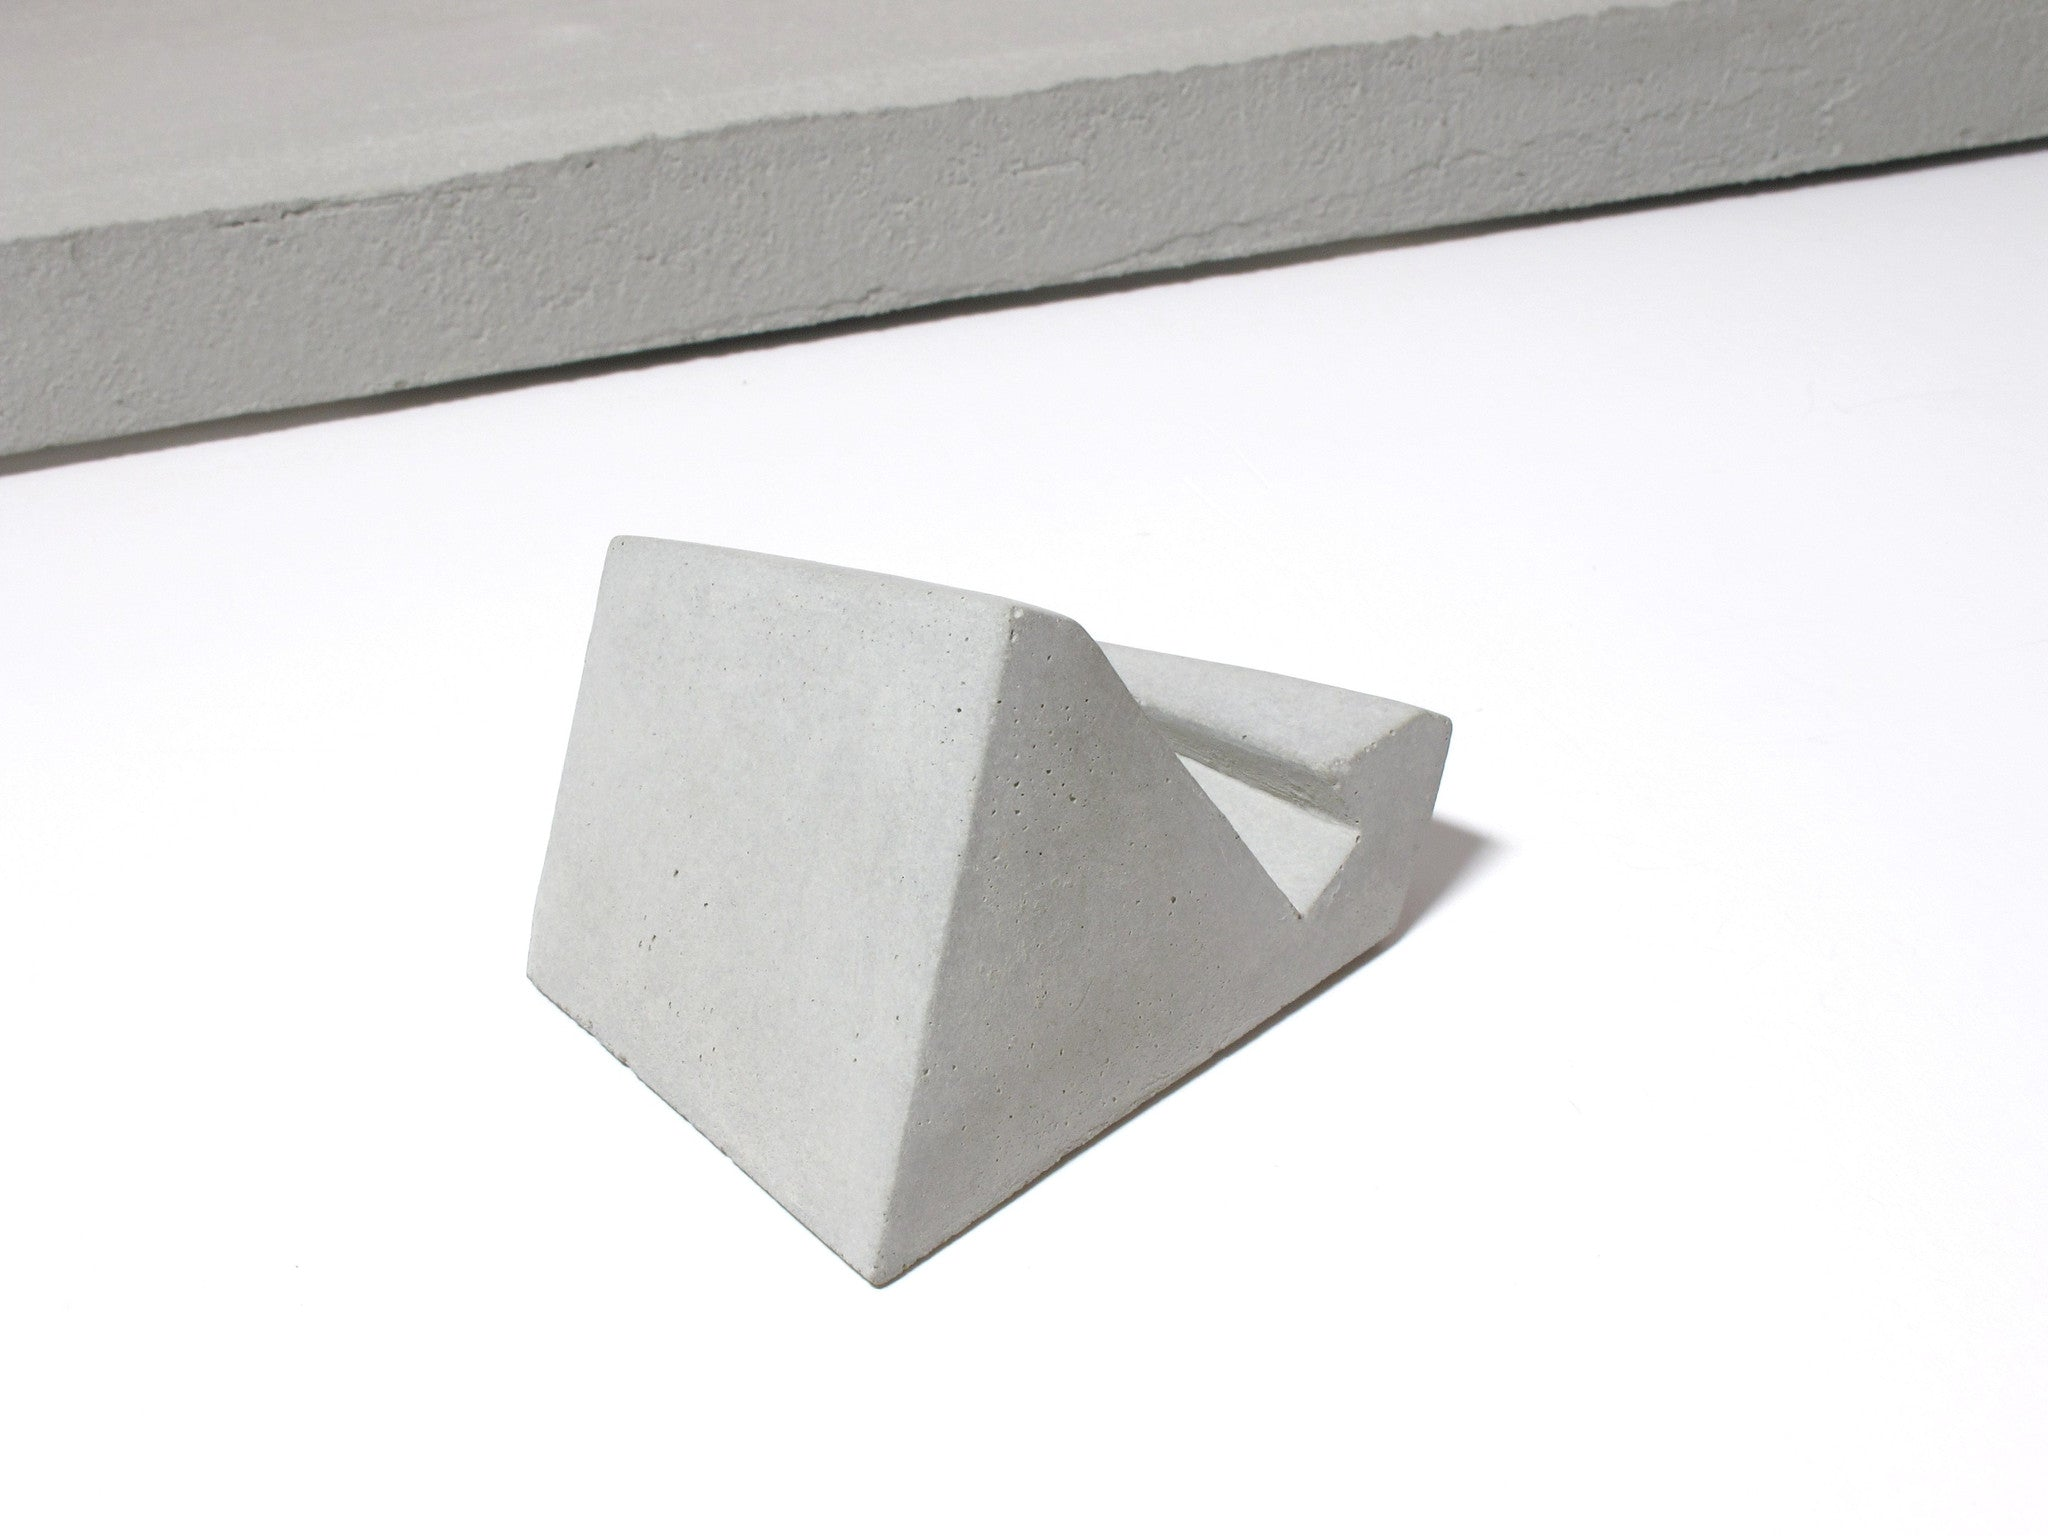 Concrete desktop business card holder vertical business cards concrete desktop business card holder vertical business cards colourmoves